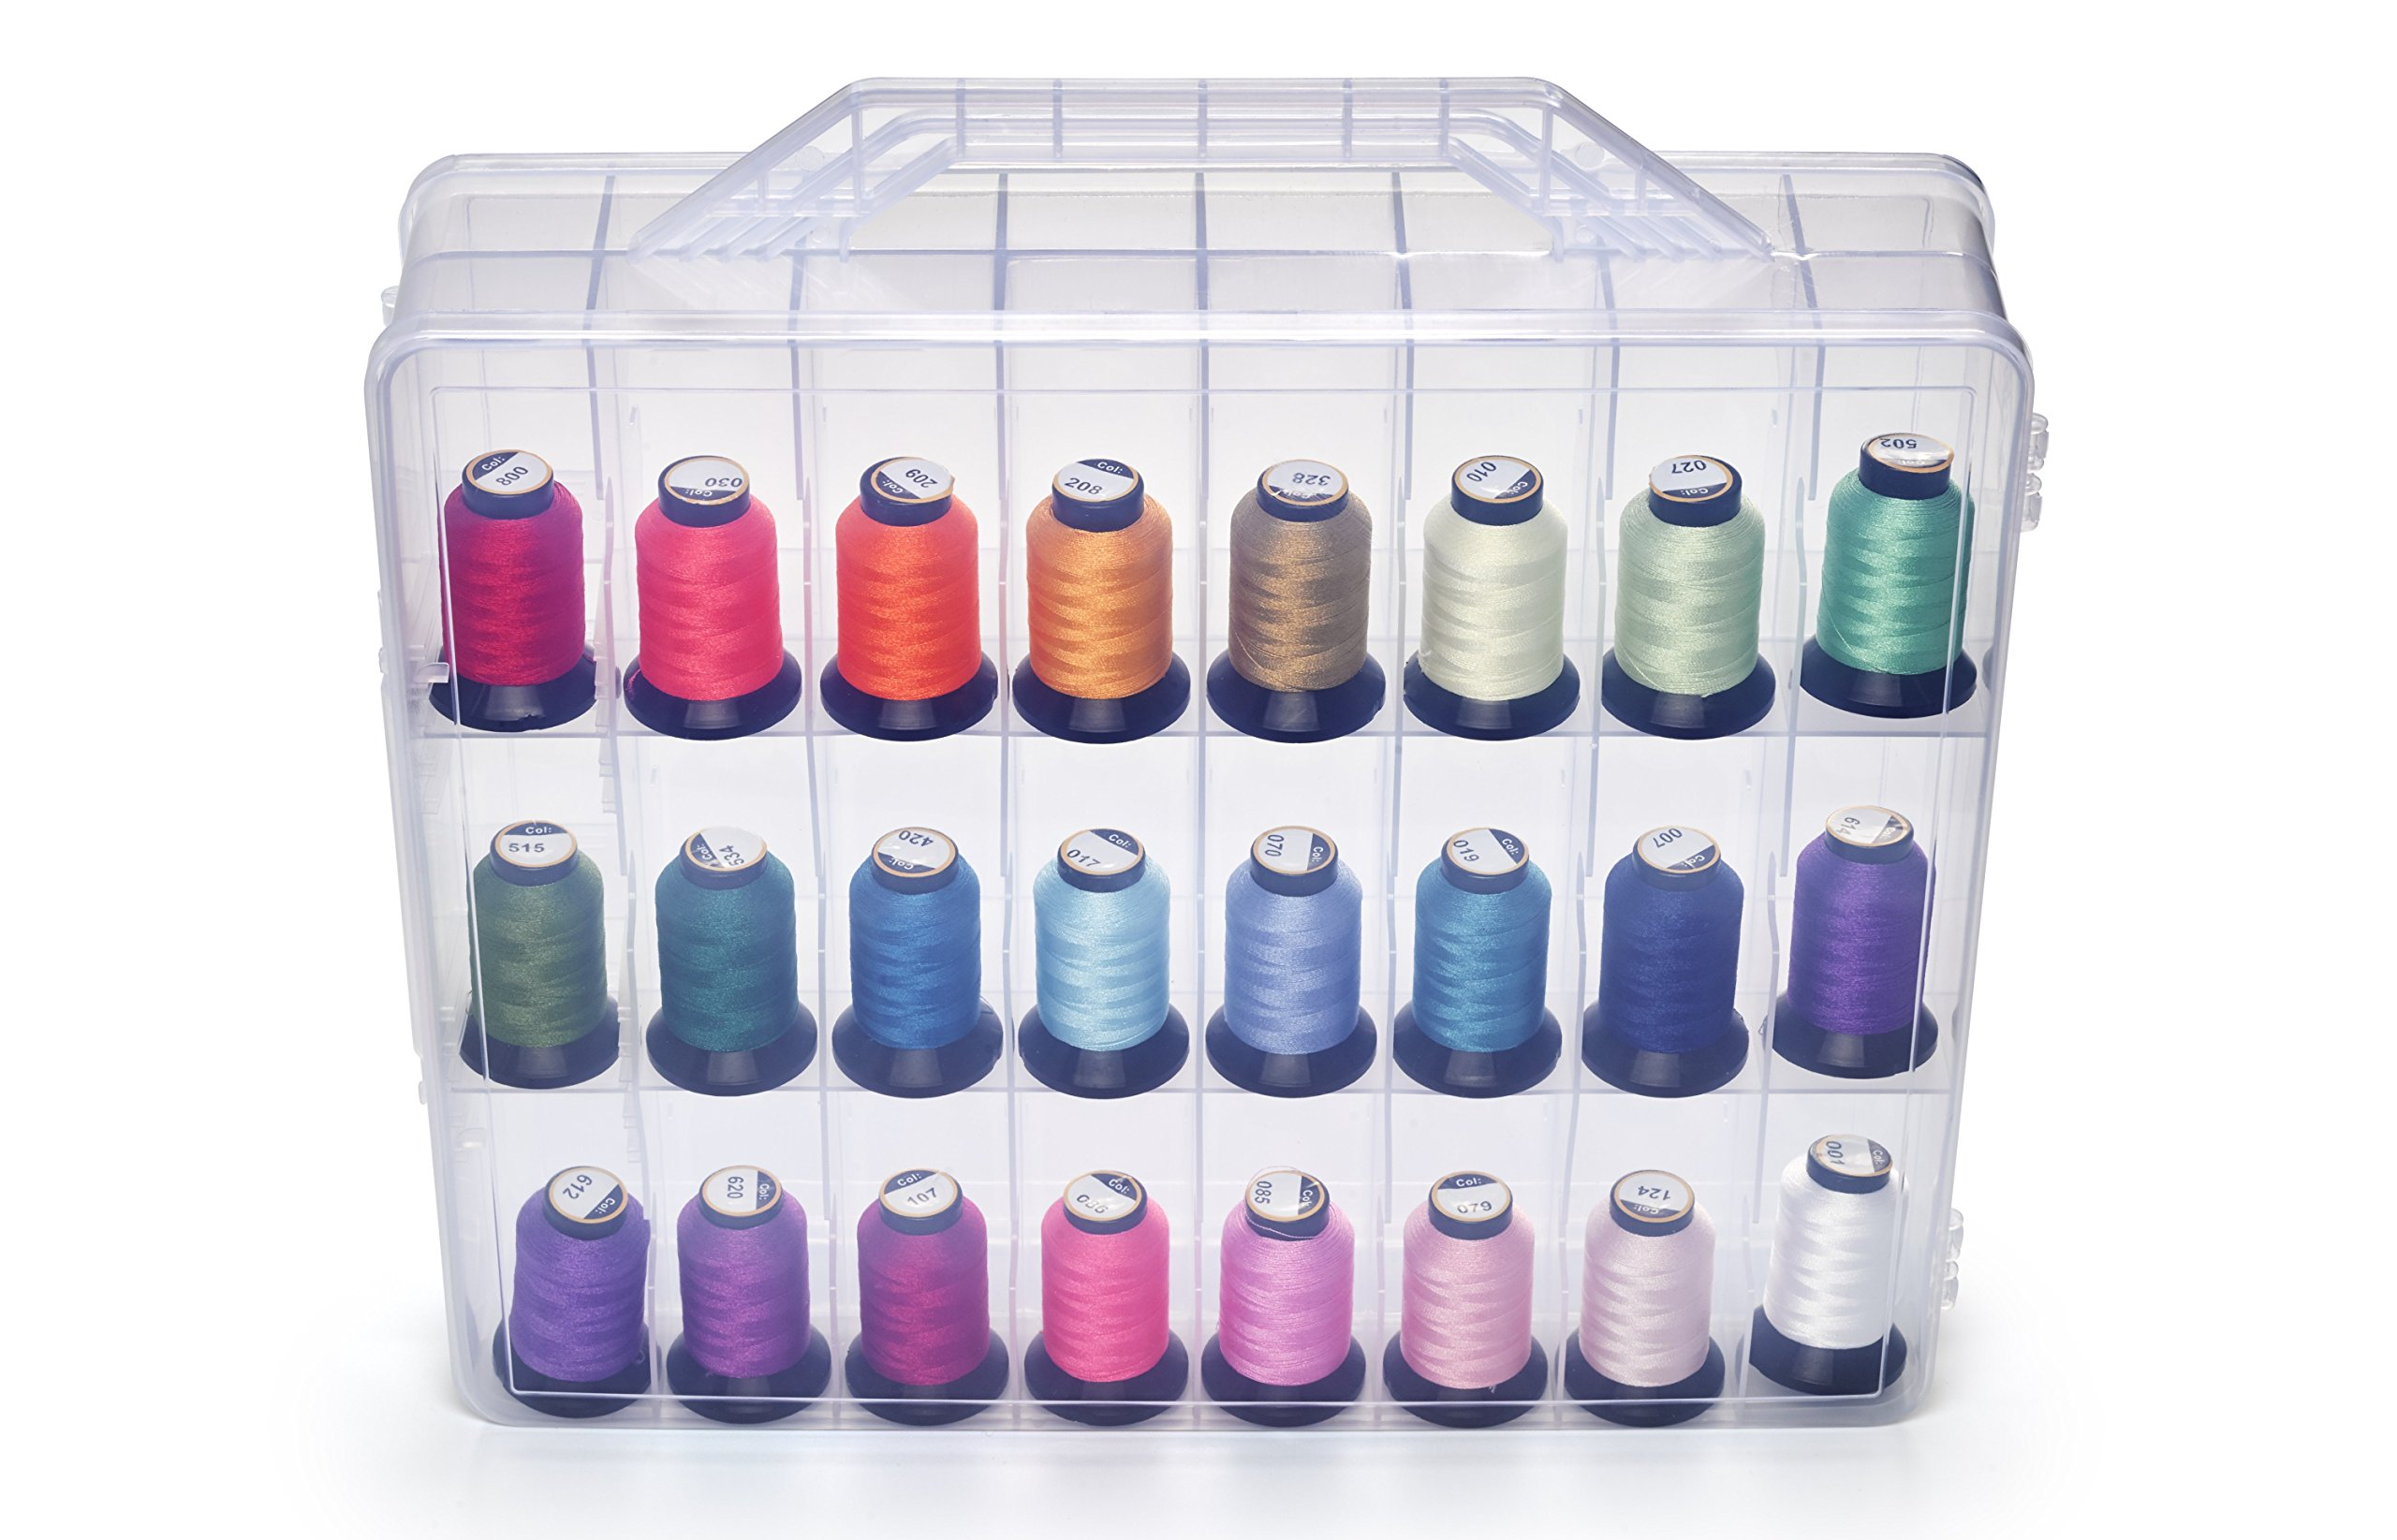 Cheap Nail Polish Storage Find Nail Polish Storage Deals On Line At